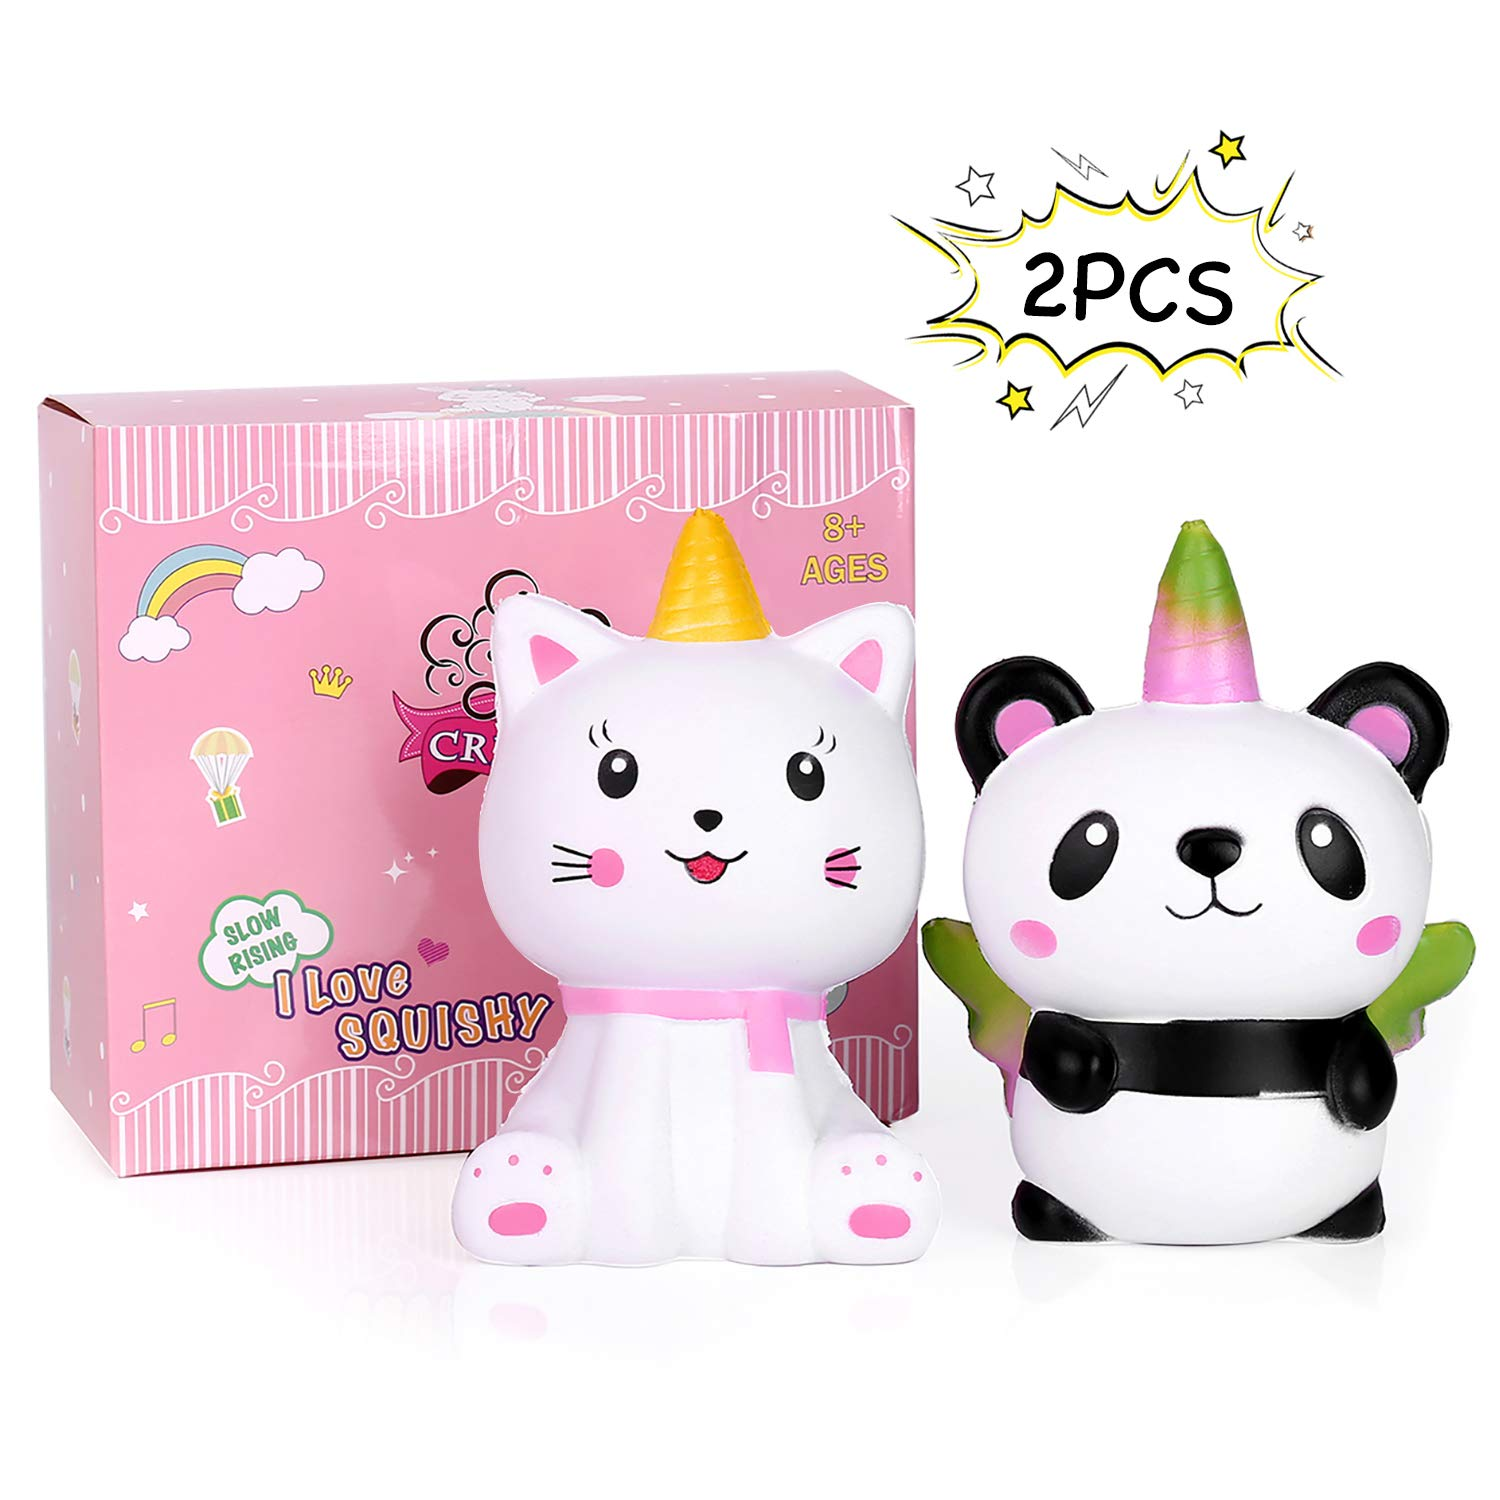 Cat Panda Unicorn Squishy Pack - Crefun 2R-SD0J-29MS (2019 New) Jumbo Slow Rising Cute Squishy Animals Gifts for Kid Stress Relief Toys Including 2Pcs Caticorn Pandacorn Squishies,5.5 Inch,Super Soft